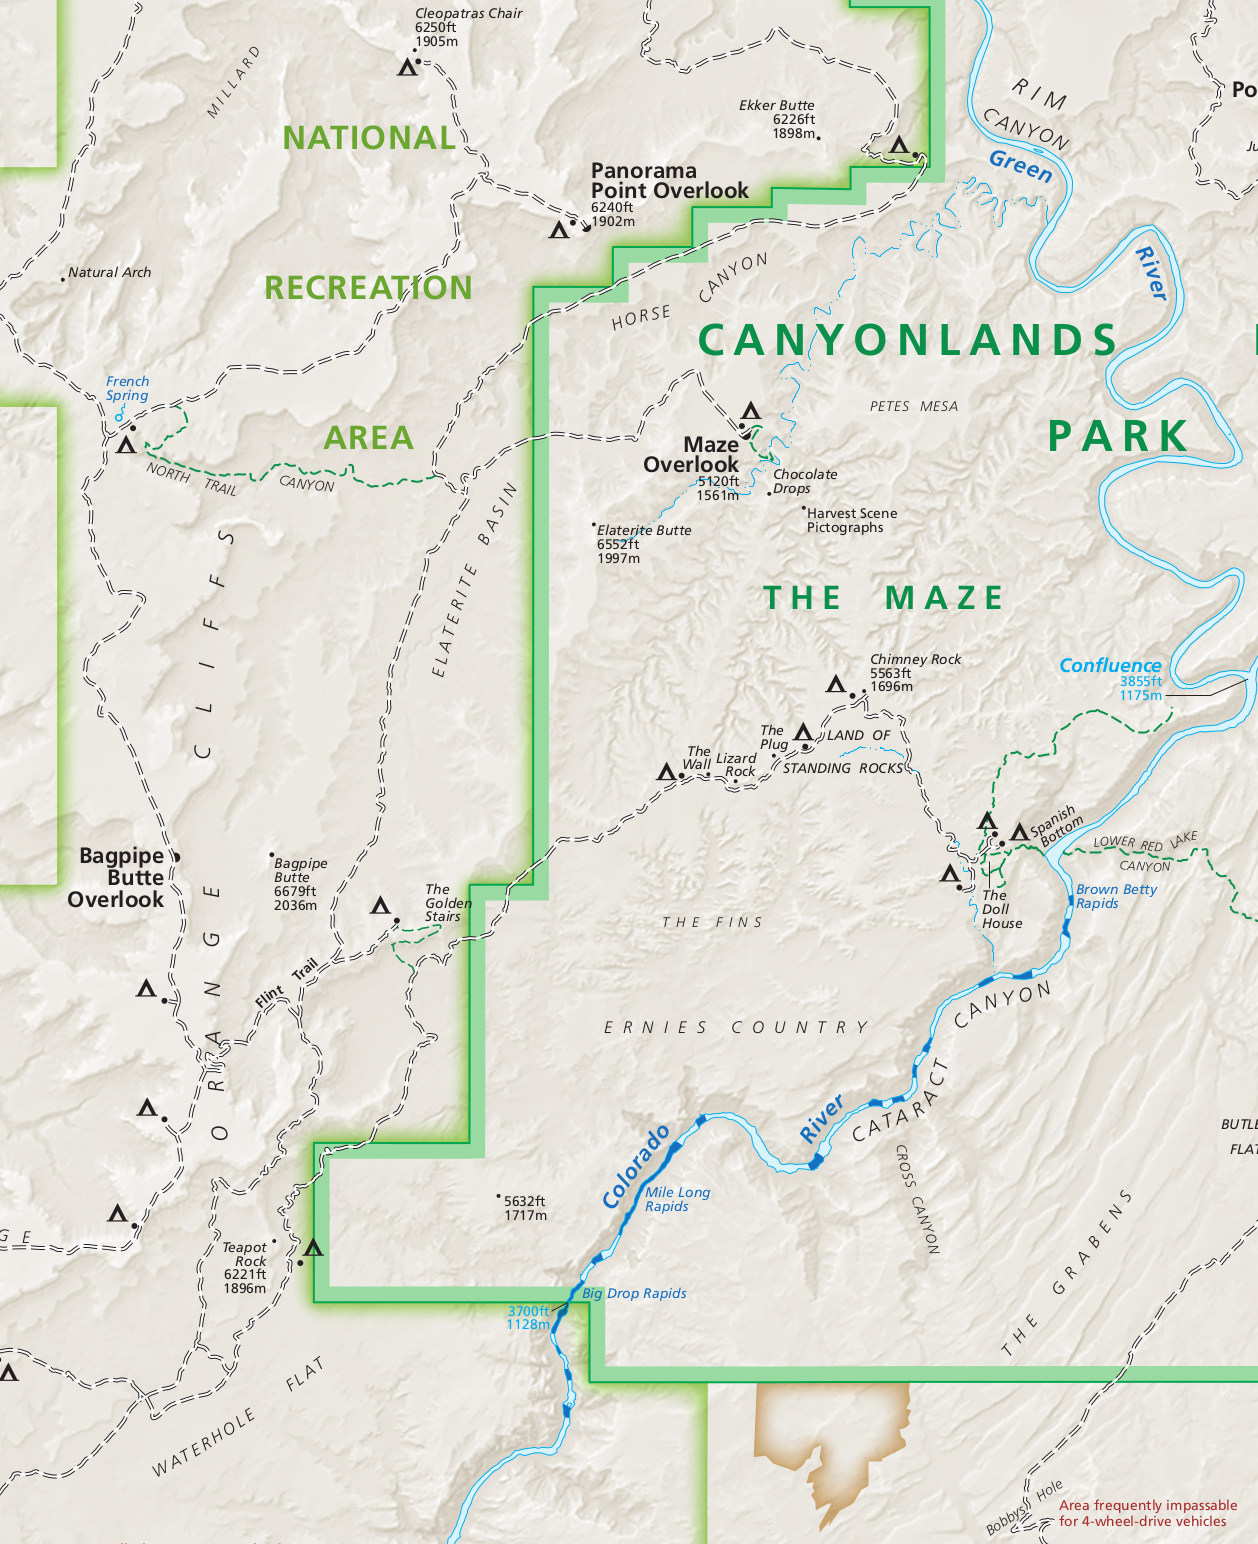 the maze utah map Canyonlands Maps Npmaps Com Just Free Maps Period